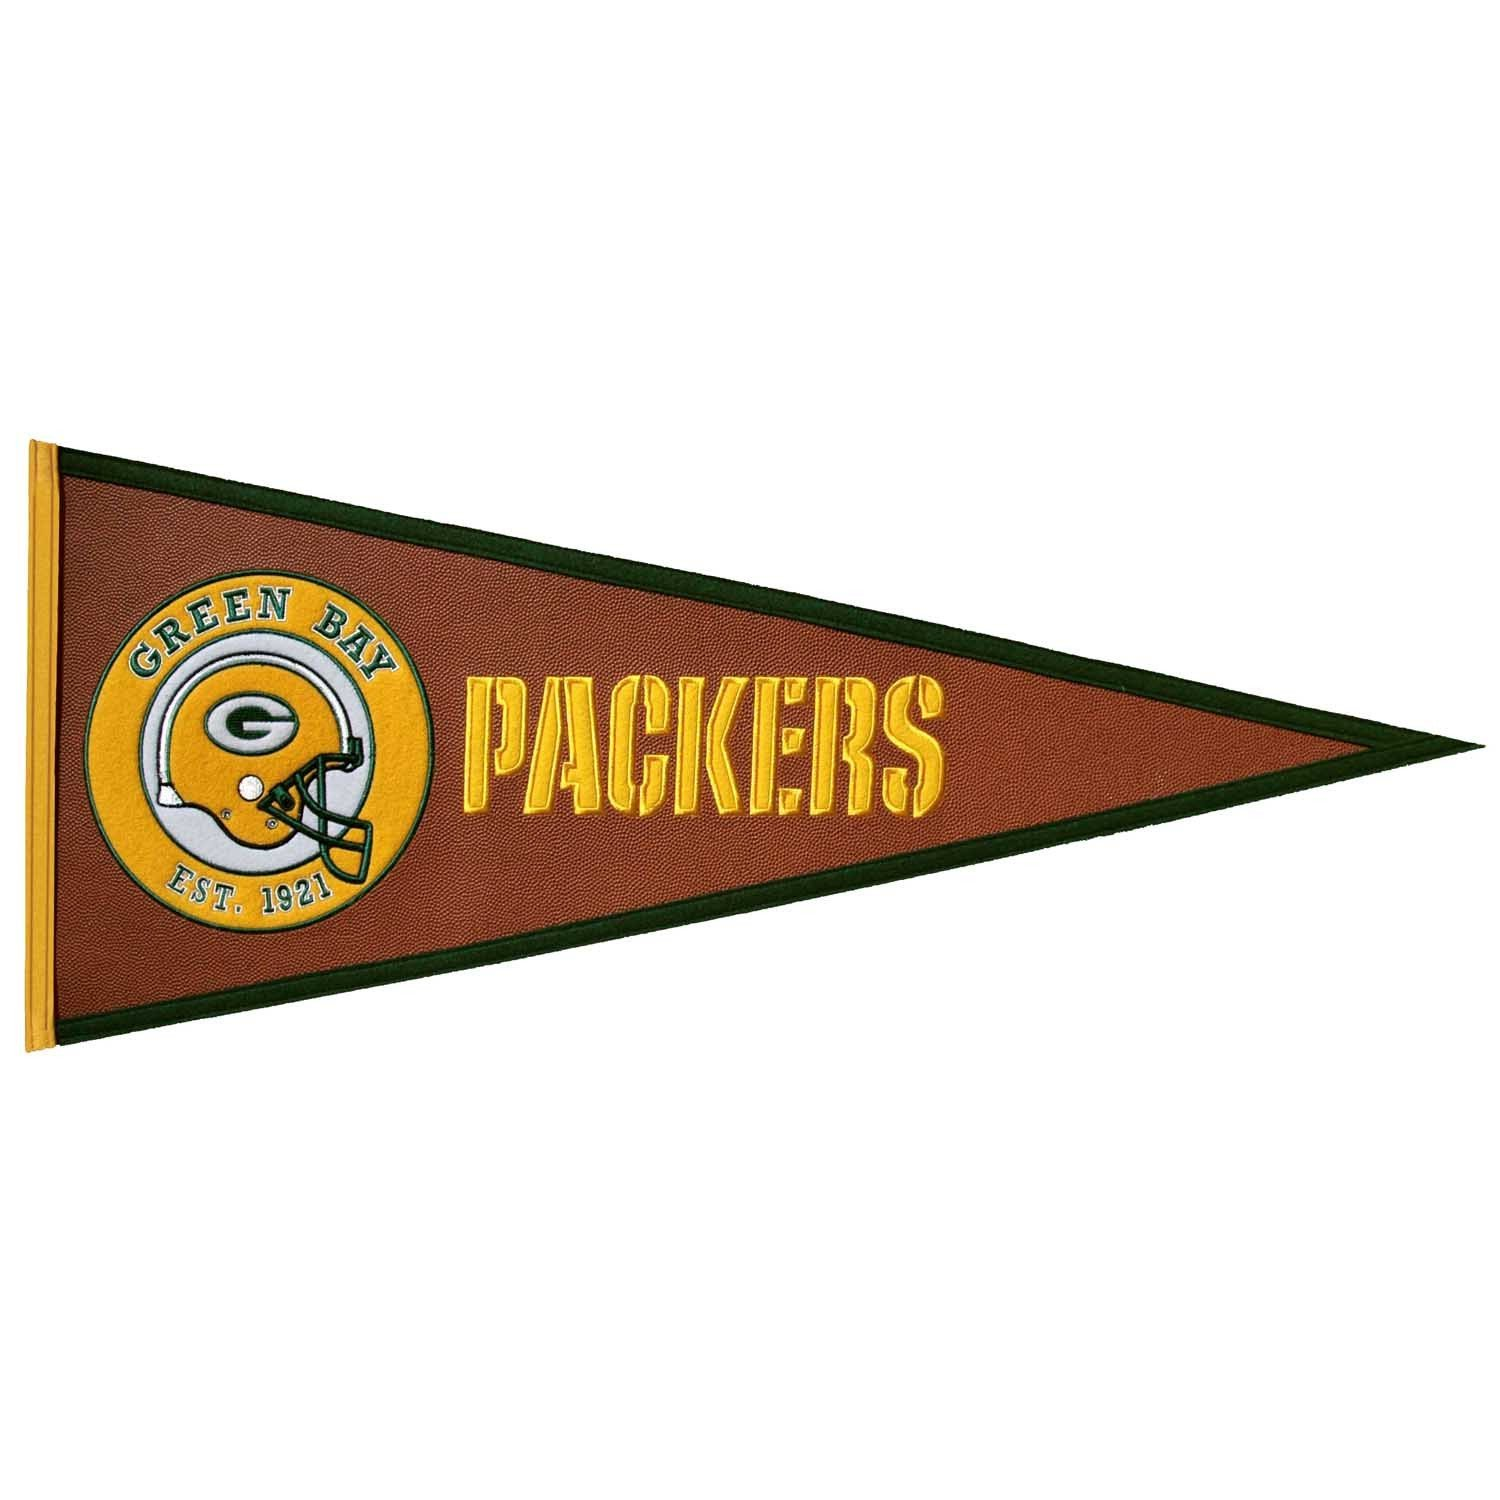 Green Bay Packers Pigskin Pennant Green Bay Packers Green Bay Nfl Green Bay